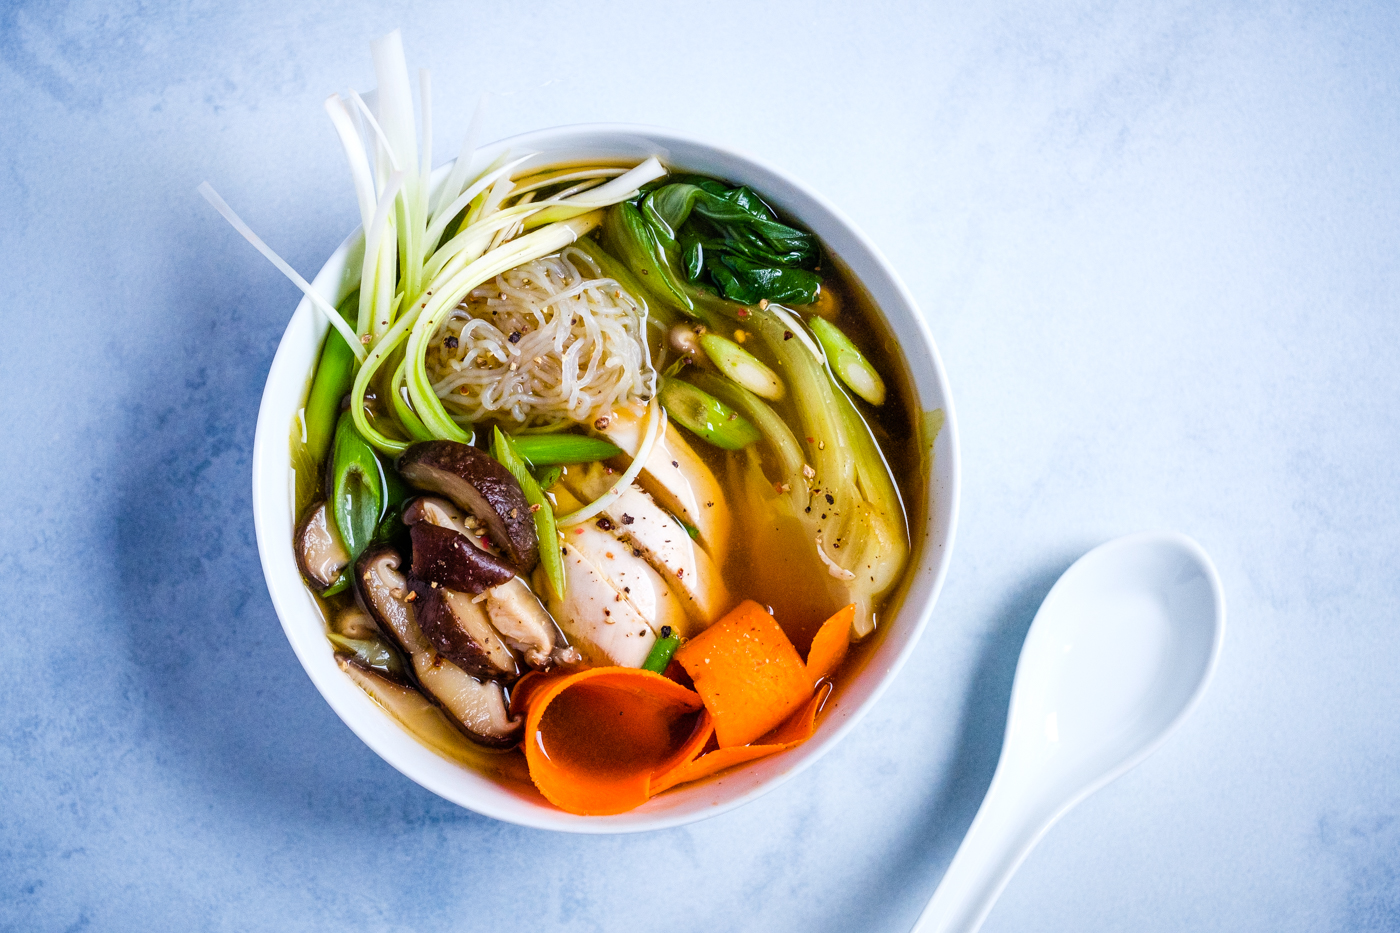 A version of the lectin-free miso ramen soup I made